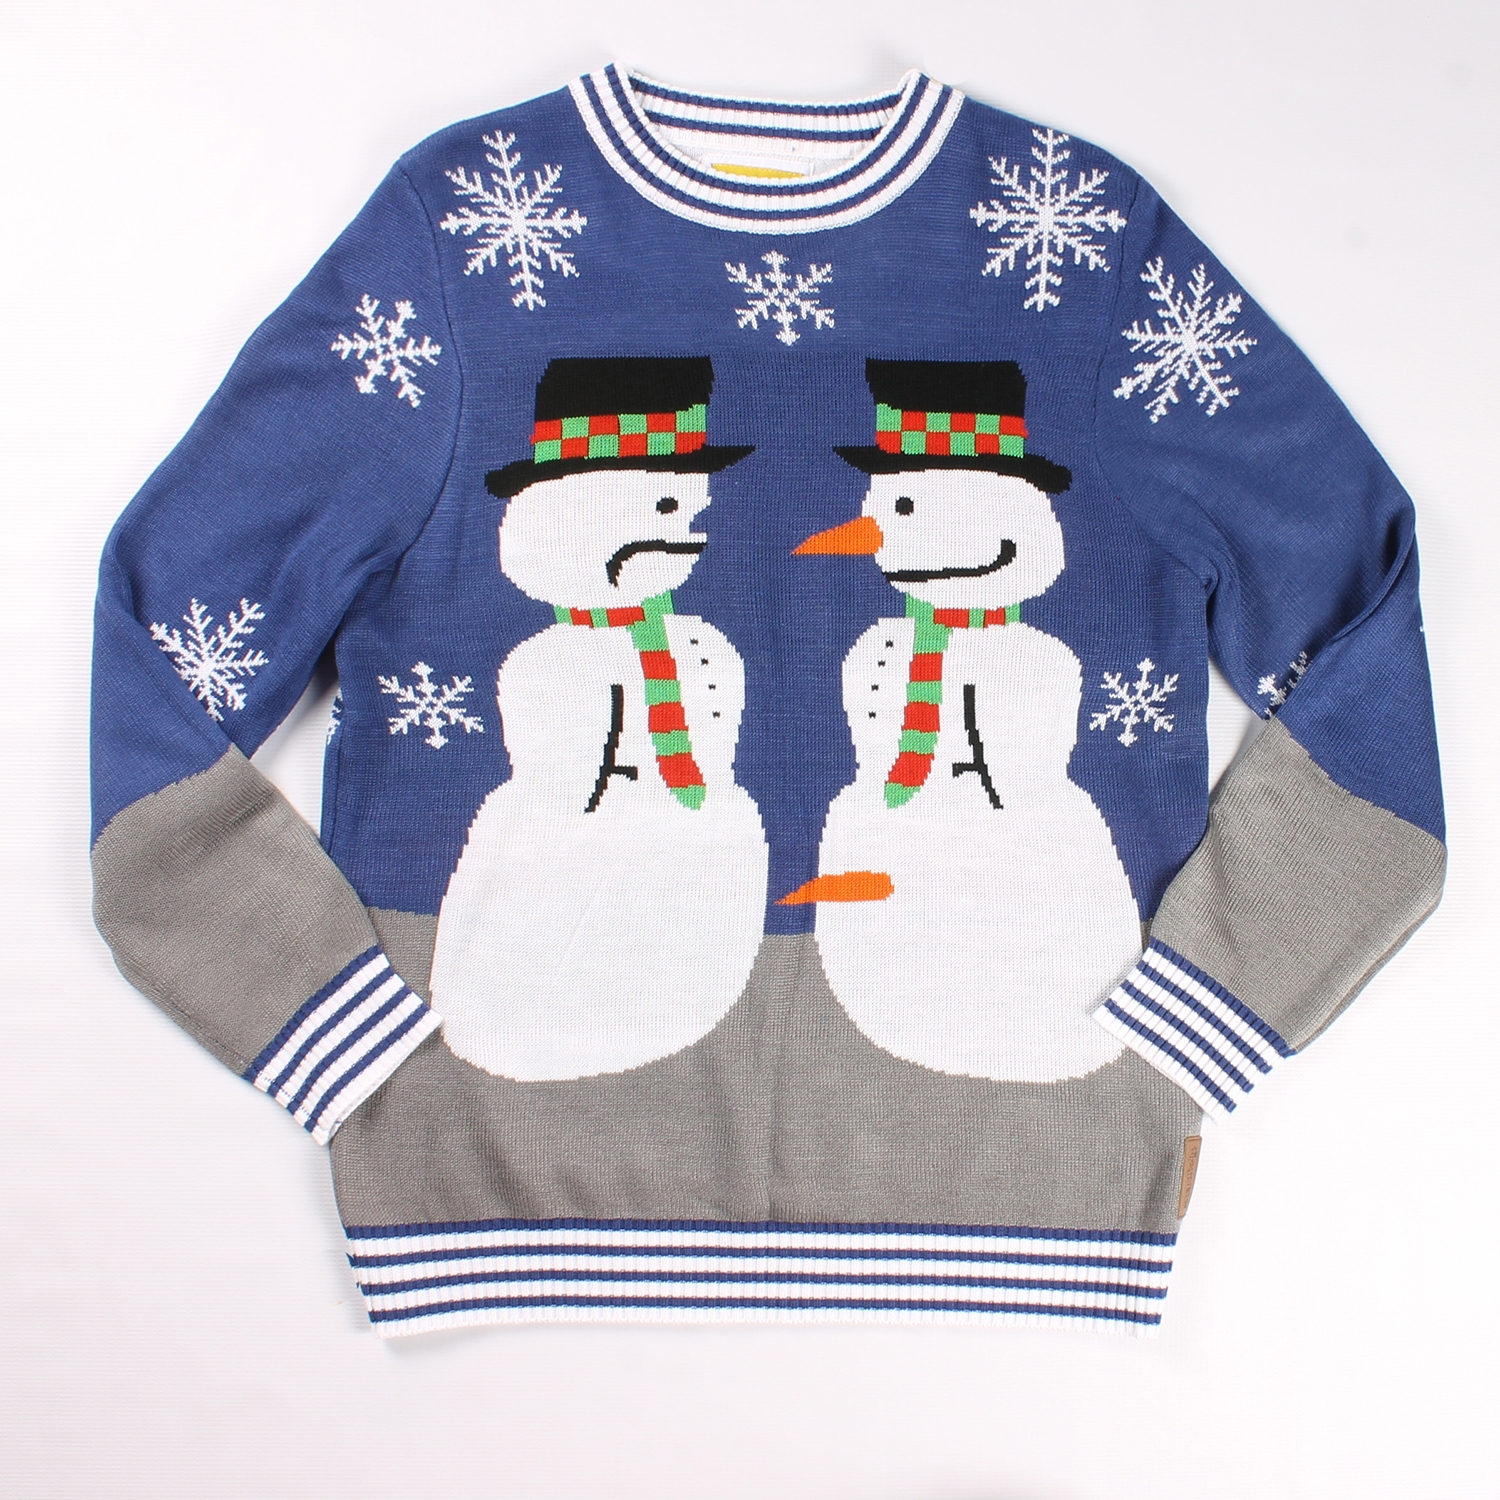 Snowman Nose Thief Christmas Sweater - PopCult Wear